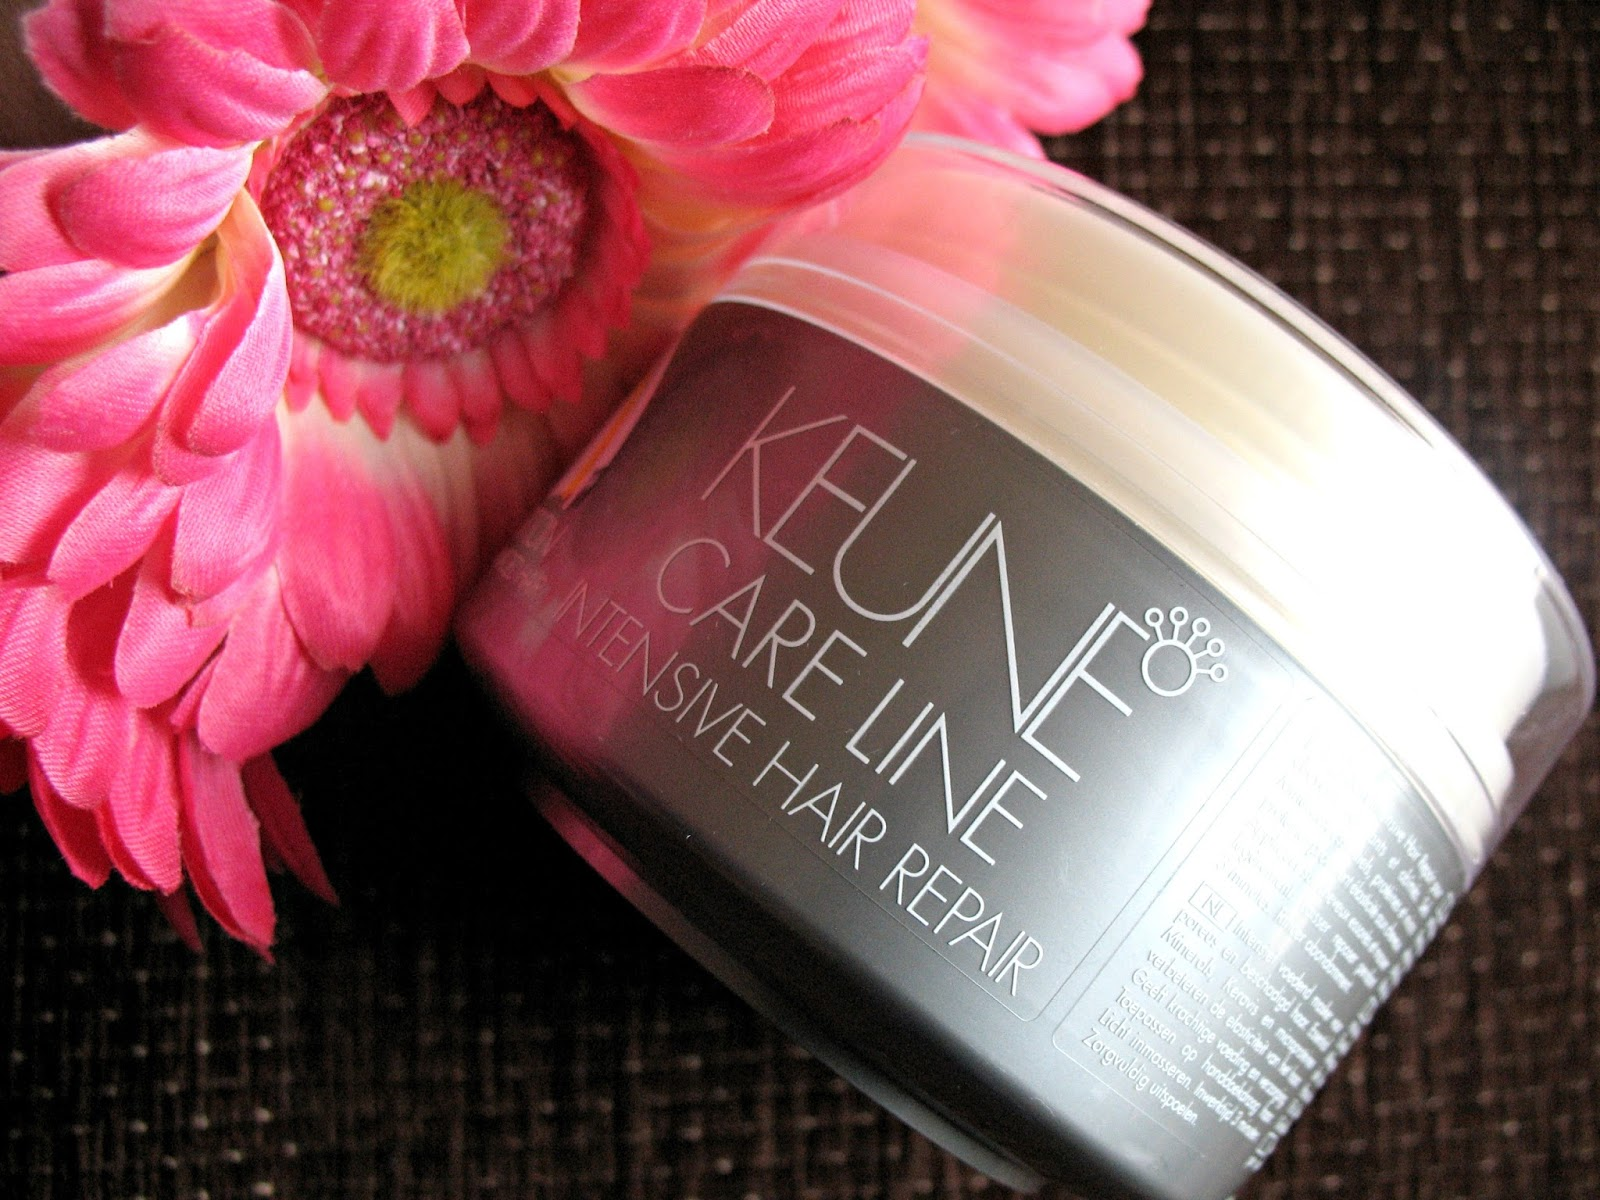 Keune-Care-Line-Intensive-Hair-Repair-for-dry-porous-damaged-hair | review-01